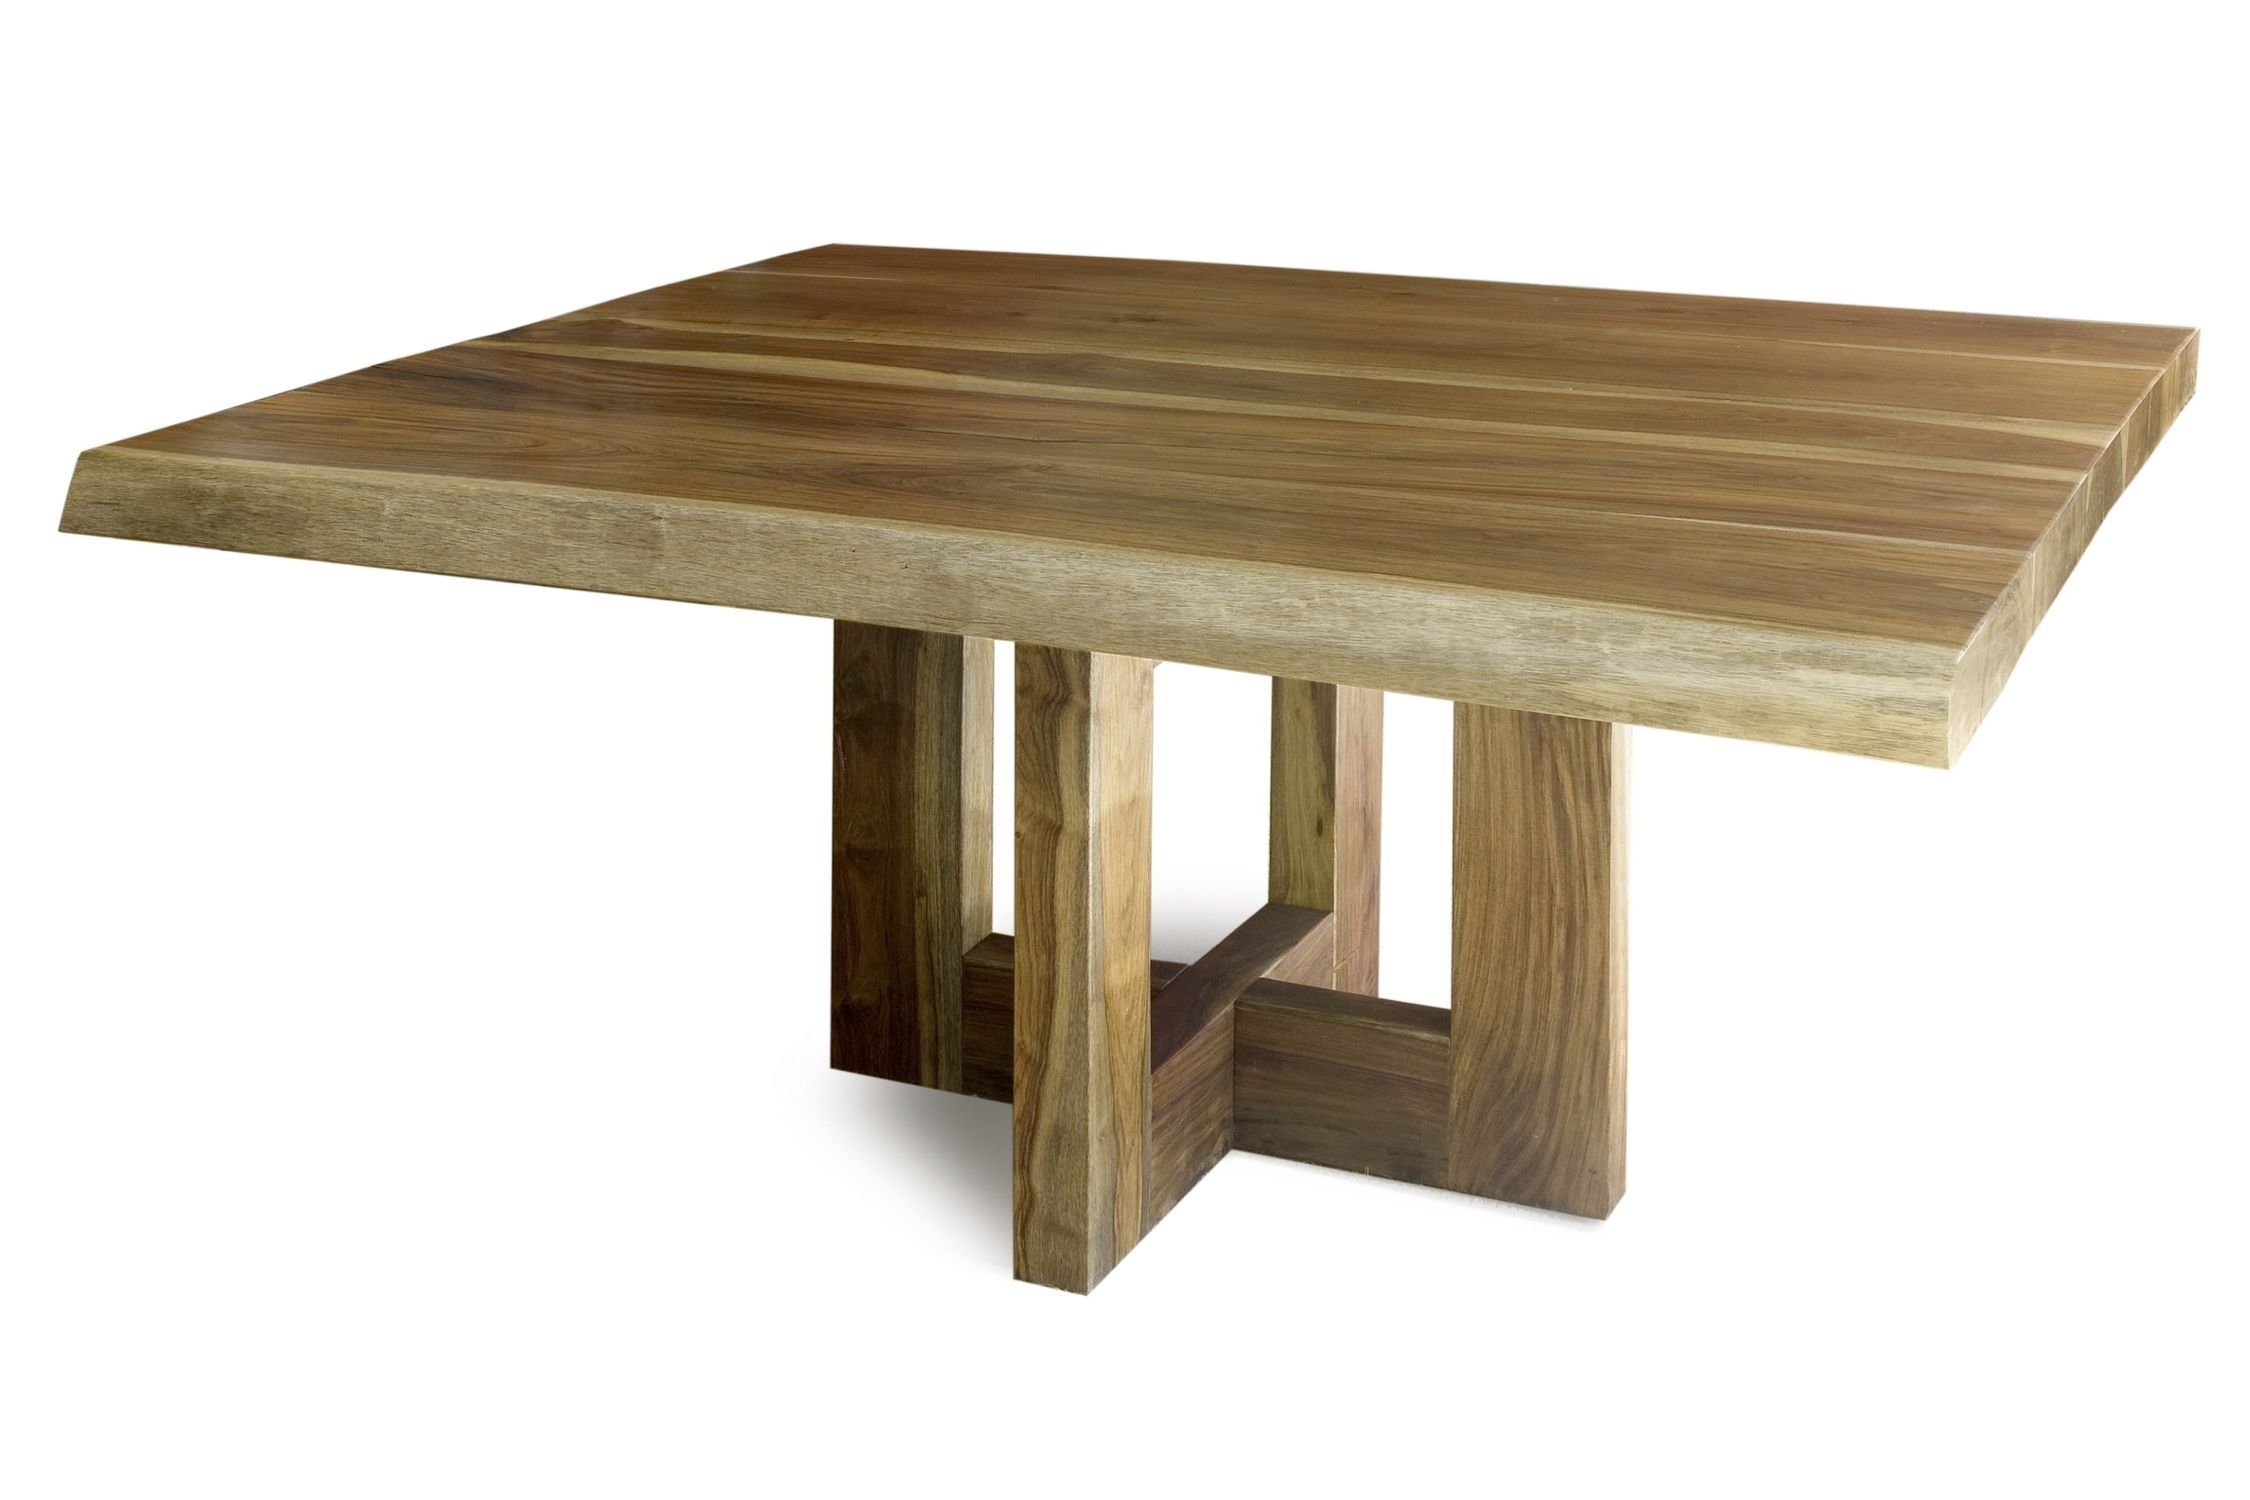 Modern Wooden Coffee Table Designs Contemporary Rectangle Unfinished Reclaimed Wood Table For